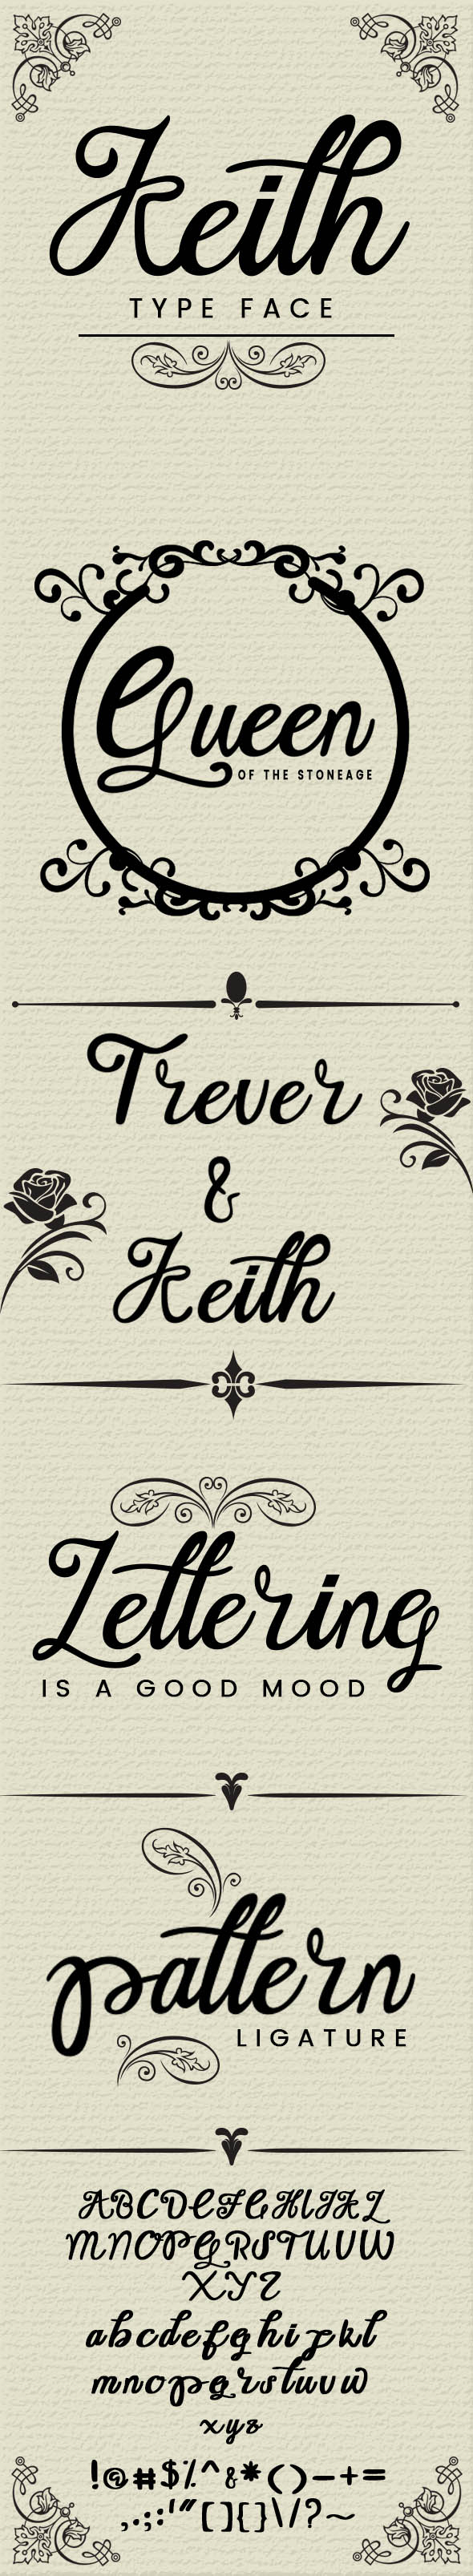 Keith Typeface - Script Fonts